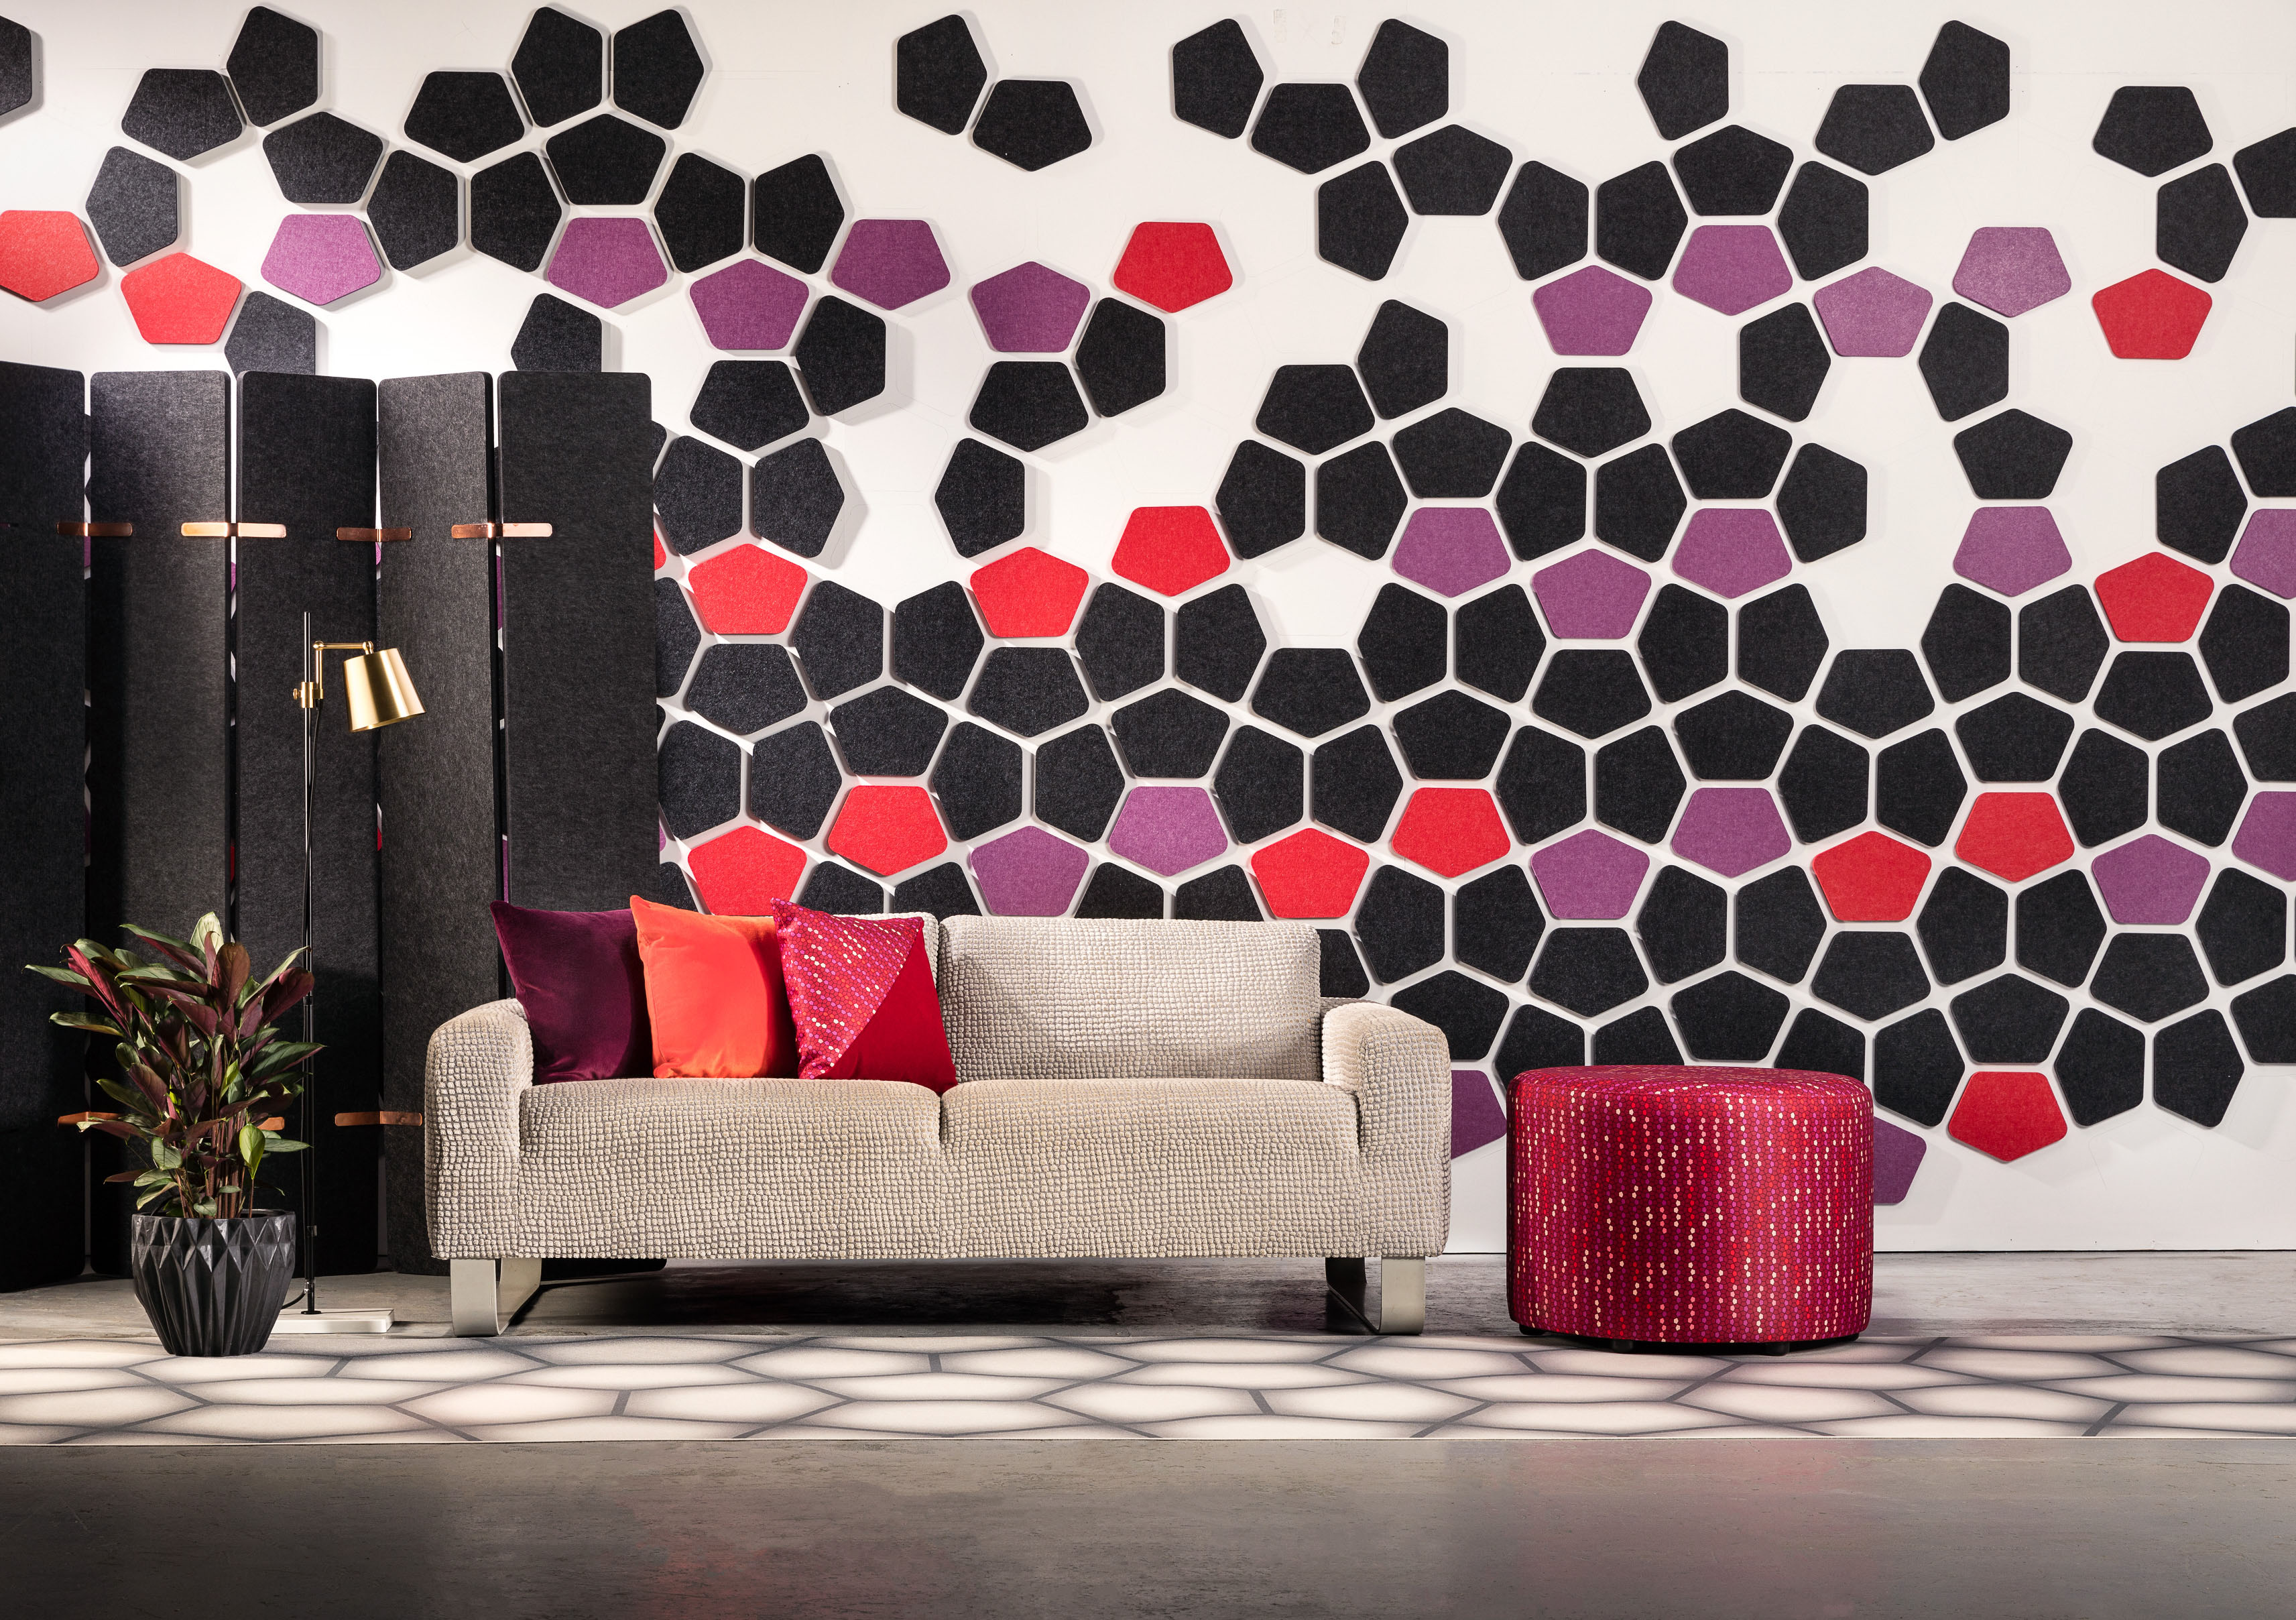 Ep-Geometry-Tile-Penta-542-258-576-Wall-Install-Photoshoot-Wi-1